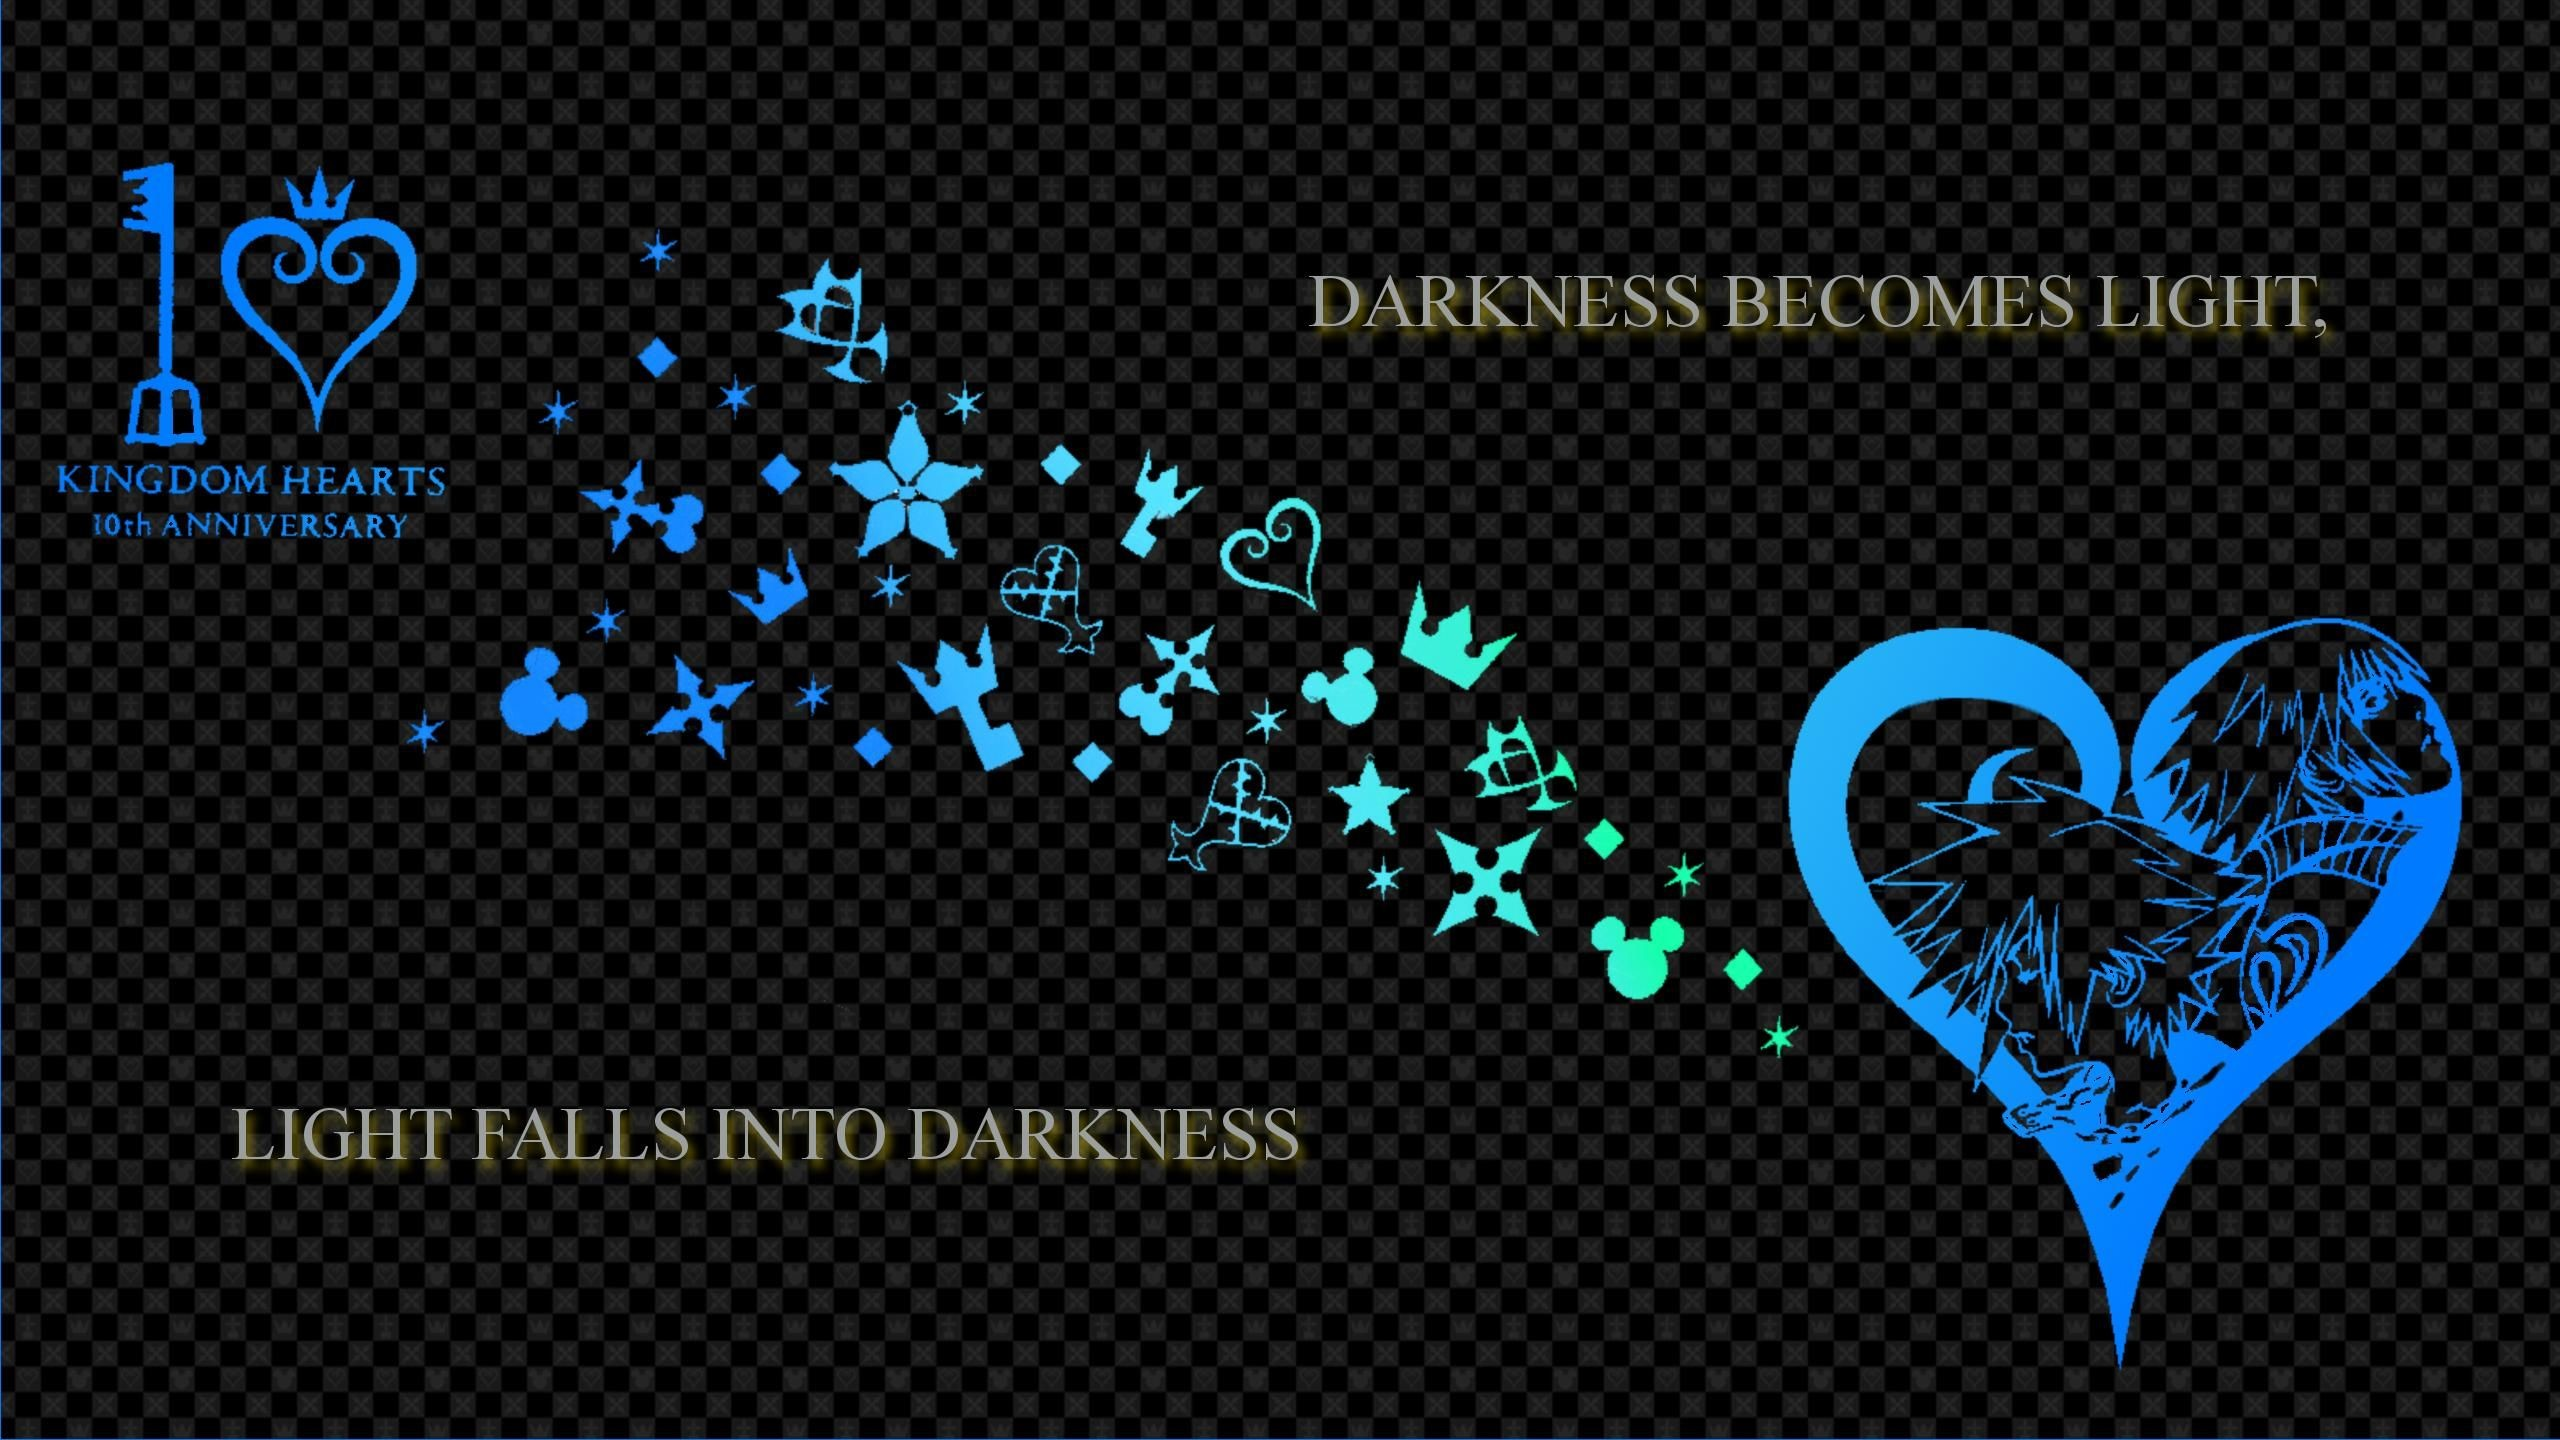 Res: 2560x1440, Kingdom Hearts Wallpapers 1080p For Desktop Wallpaper 2560 x 1440 px 1.08  MB 1920x1080 heartless sora organization 13 kairi iphone